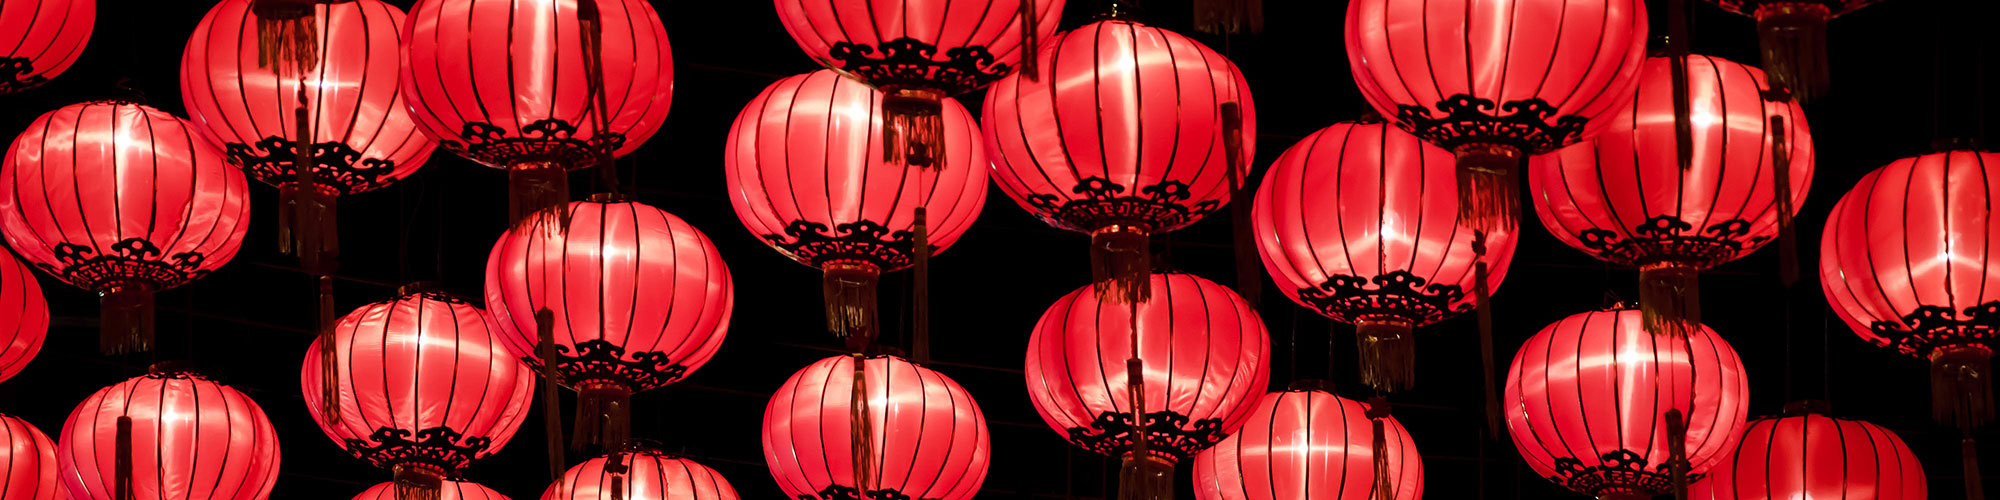 Chinese Red Lanterns at Night in China